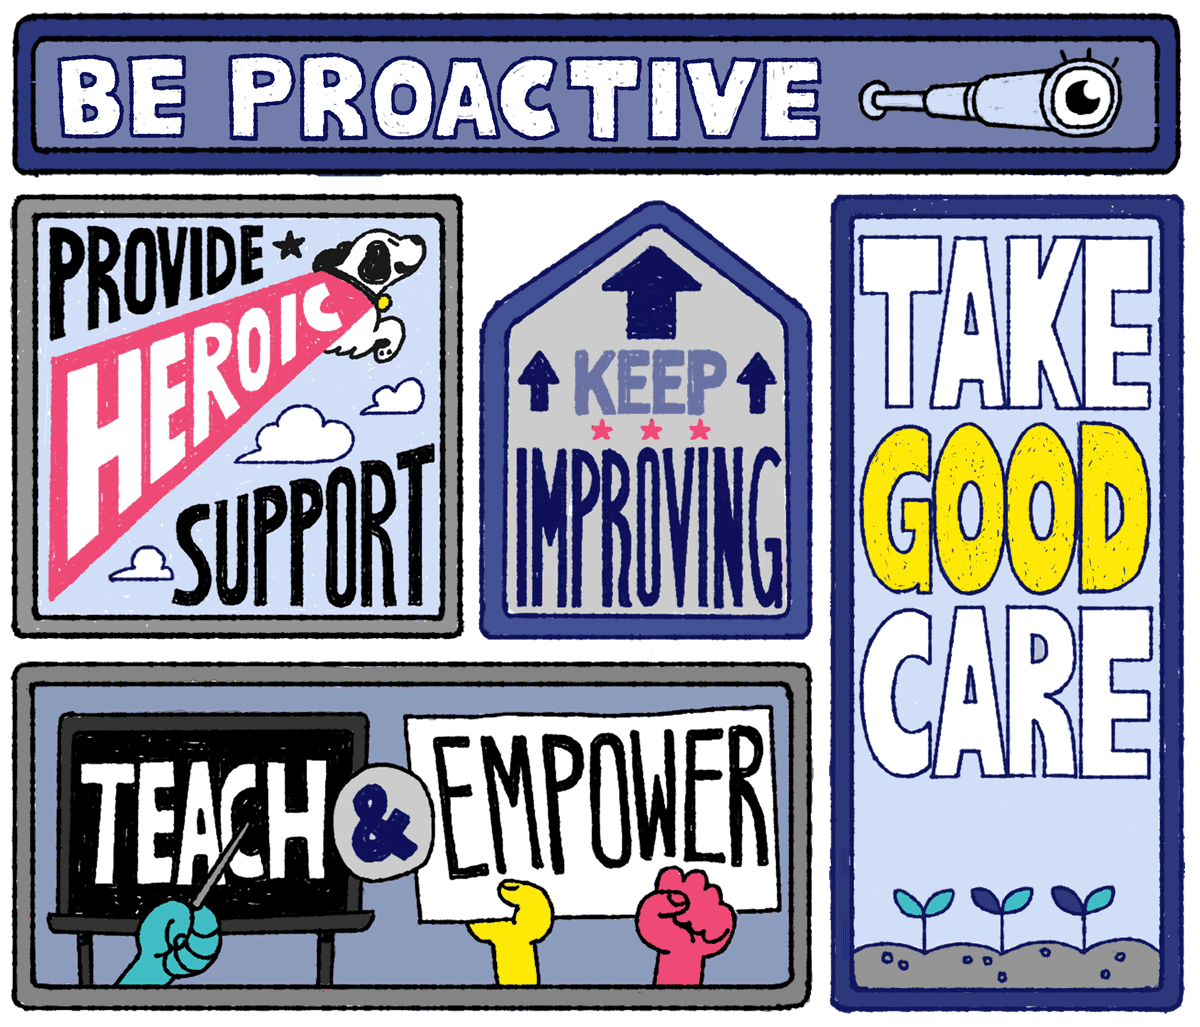 An illustration of each of our five core values